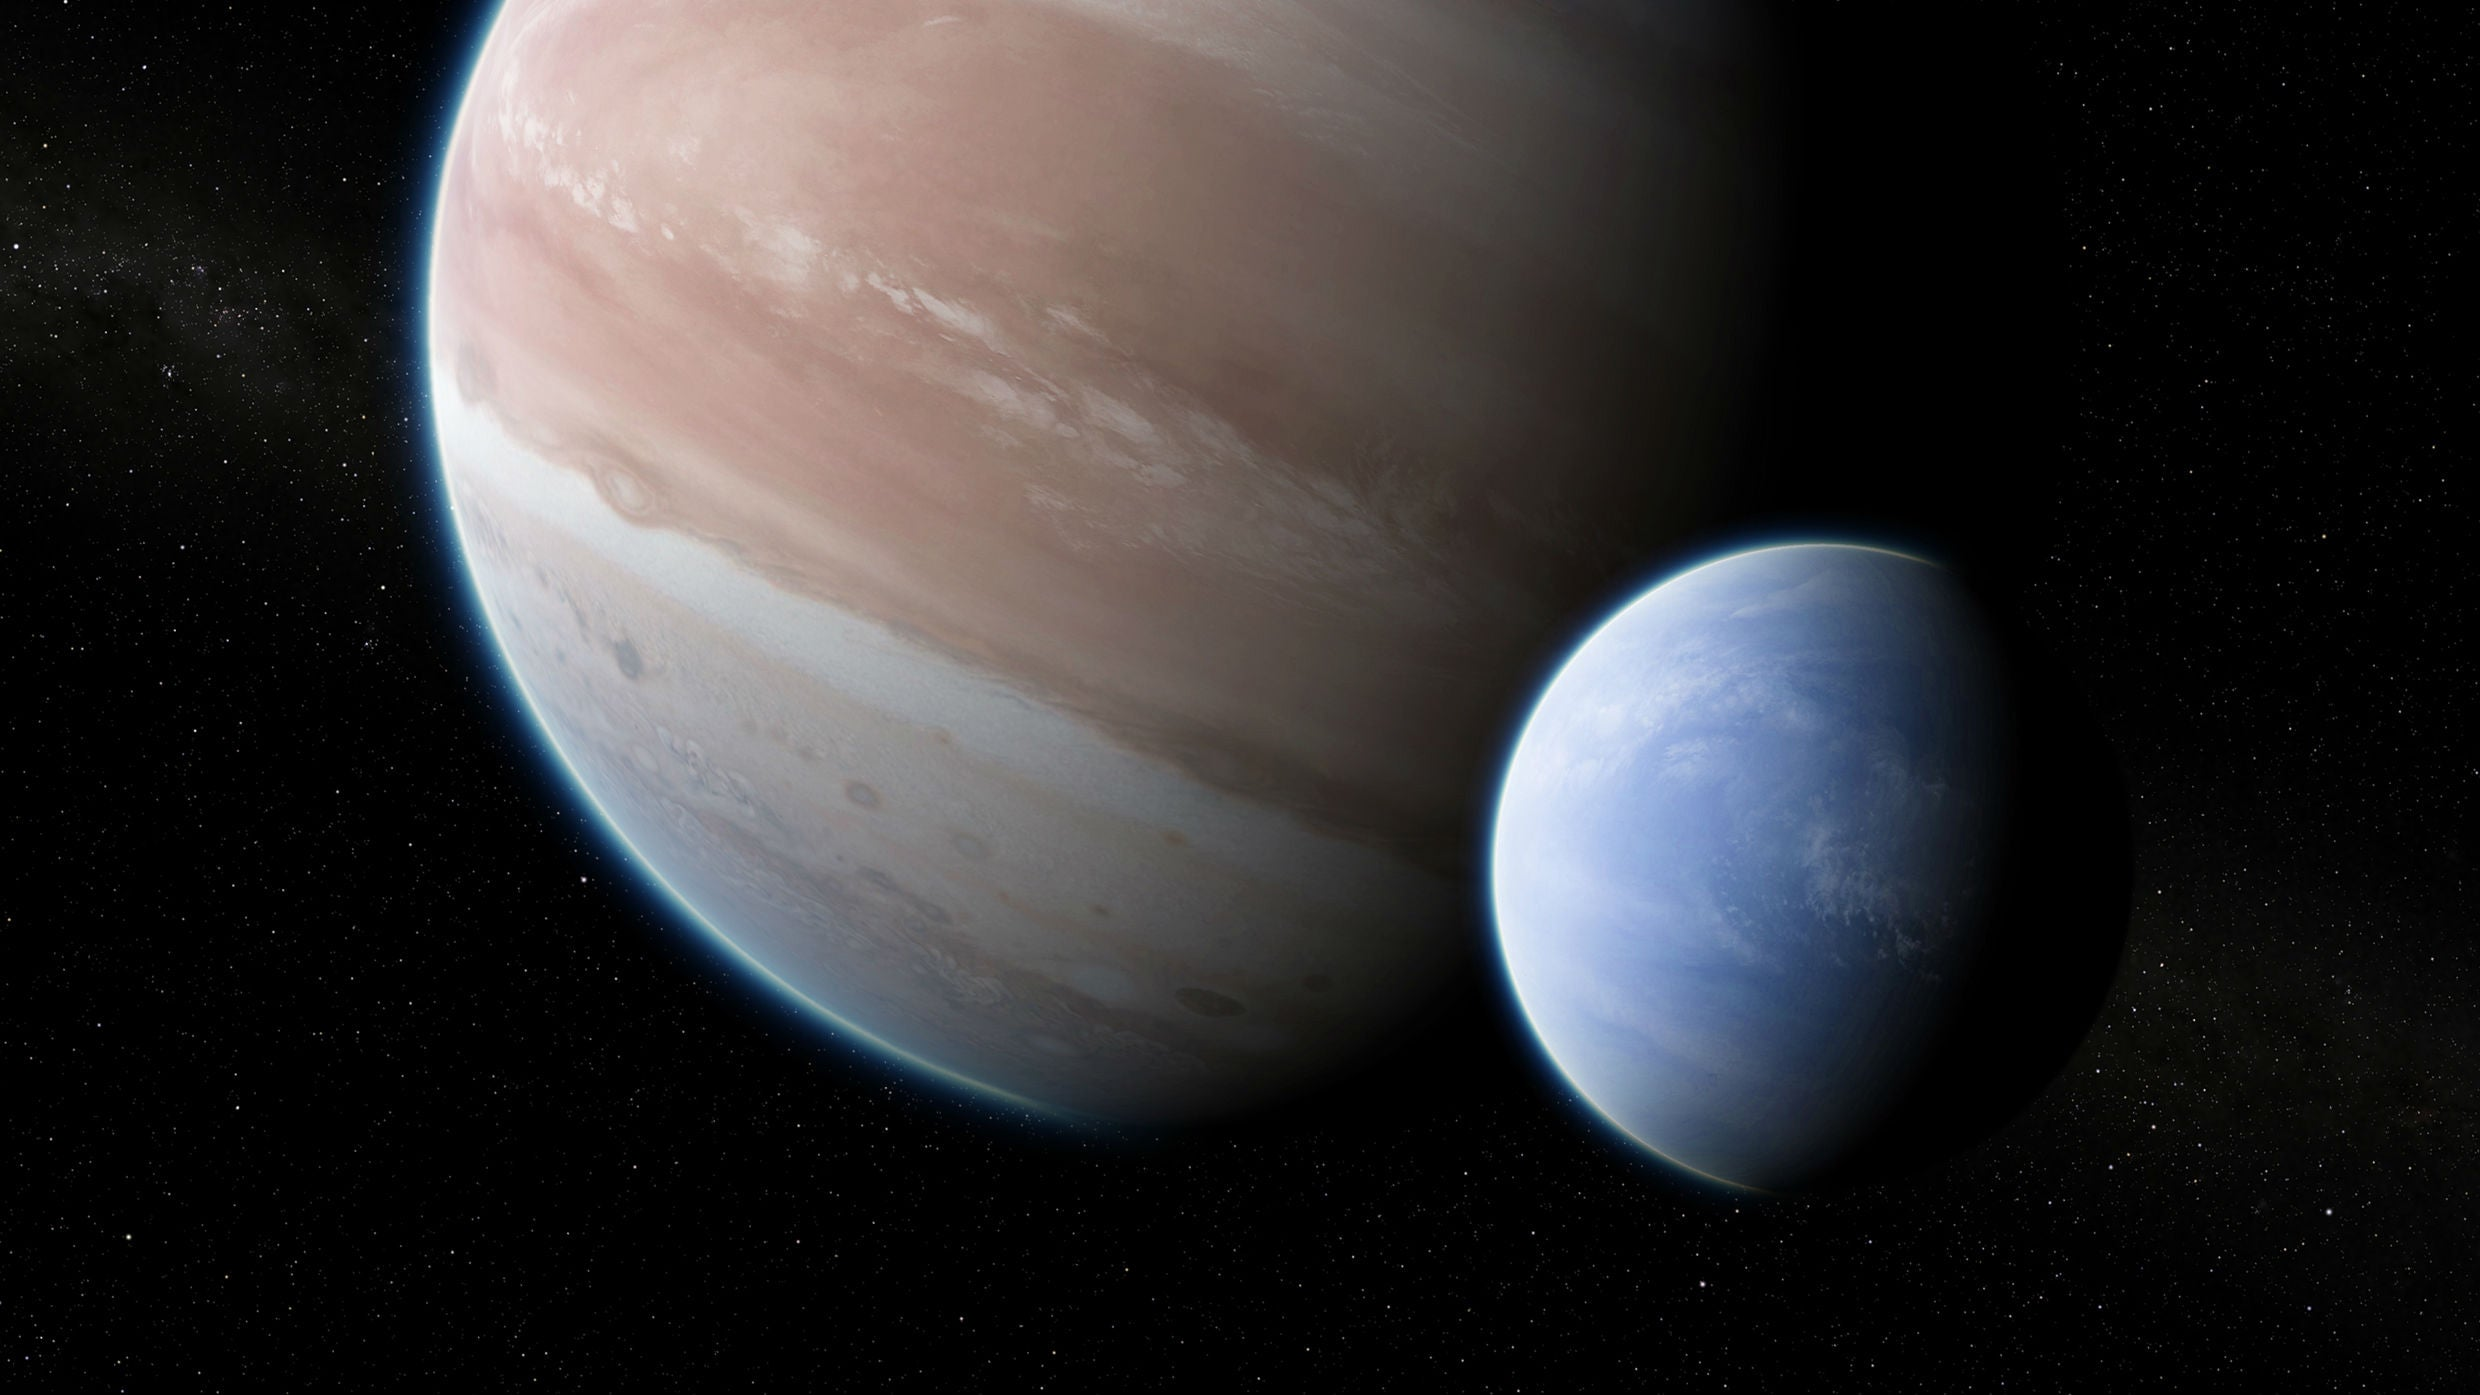 New Hubble Observations Boost Evidence For Elusive Exomoon